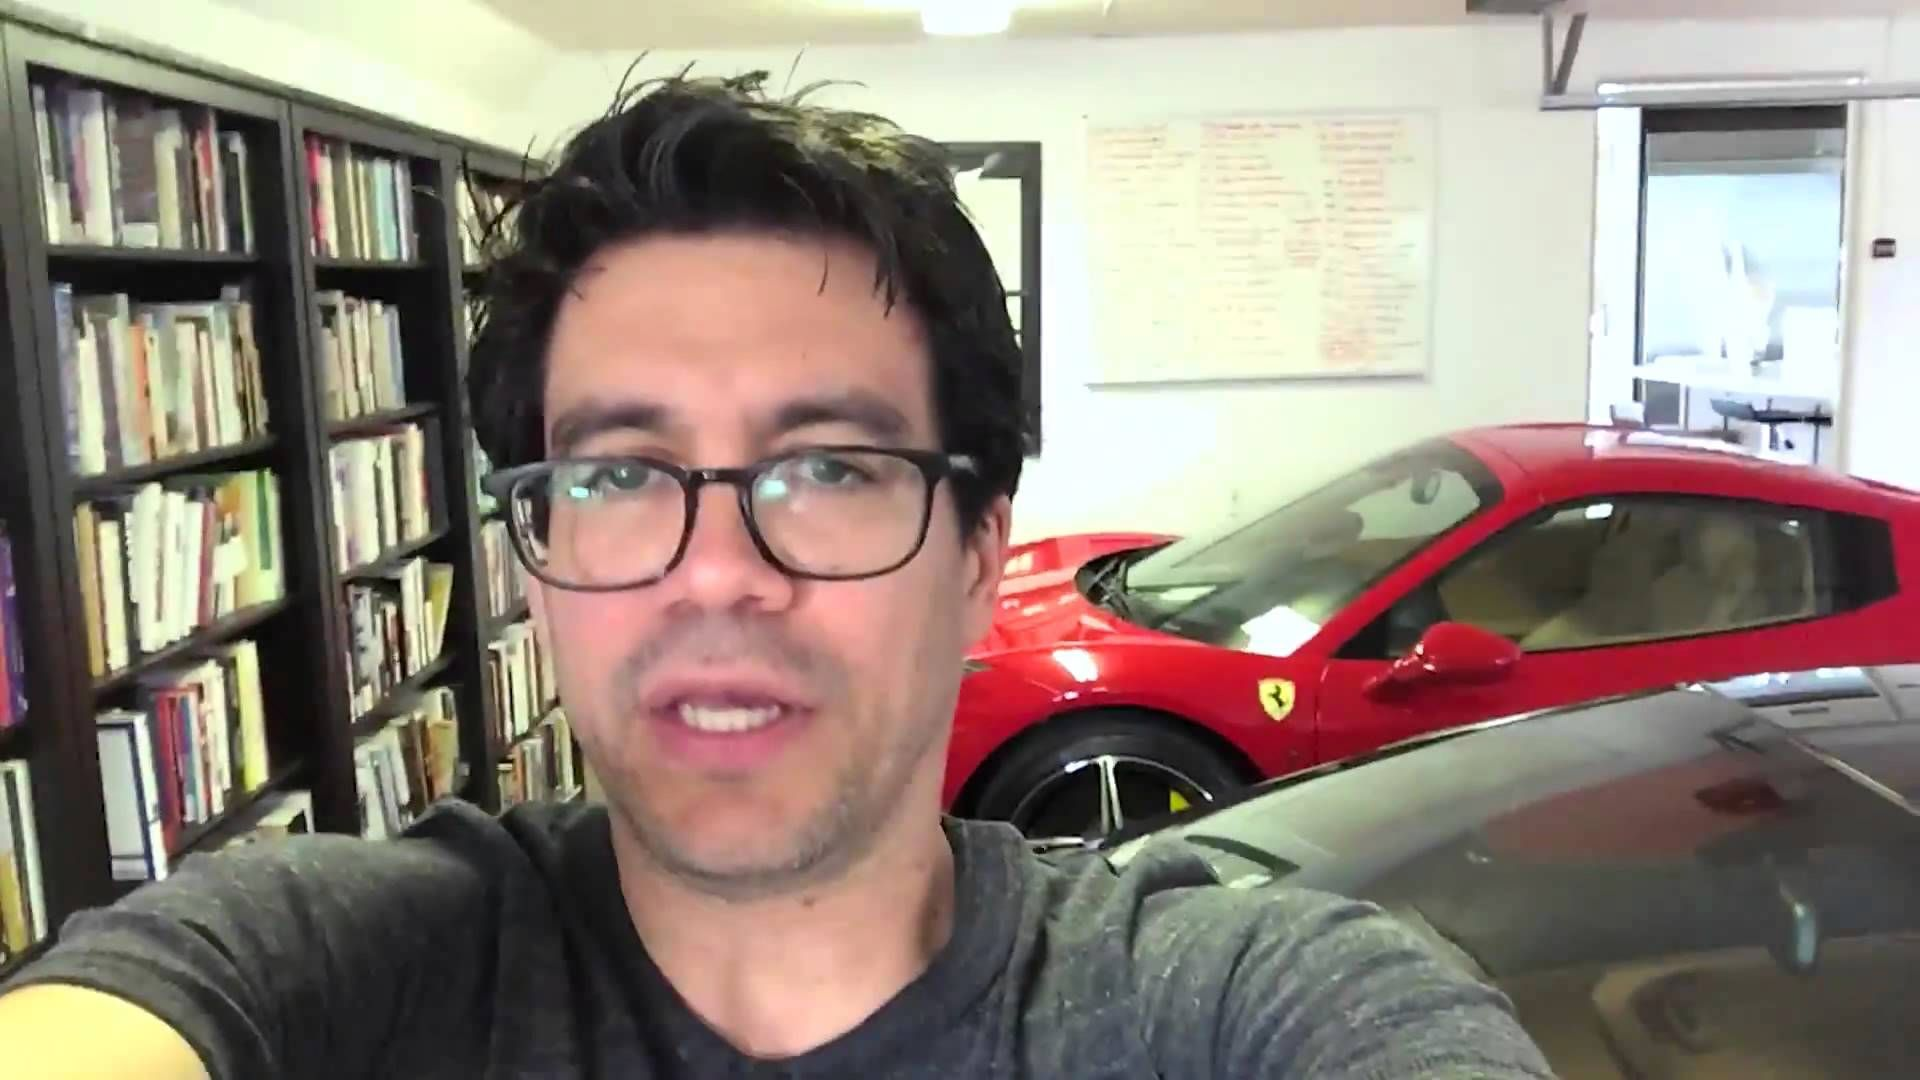 tai lopez keys to finding your destiny how to know what tai lopez 7 keys to finding your destiny how to know what career you